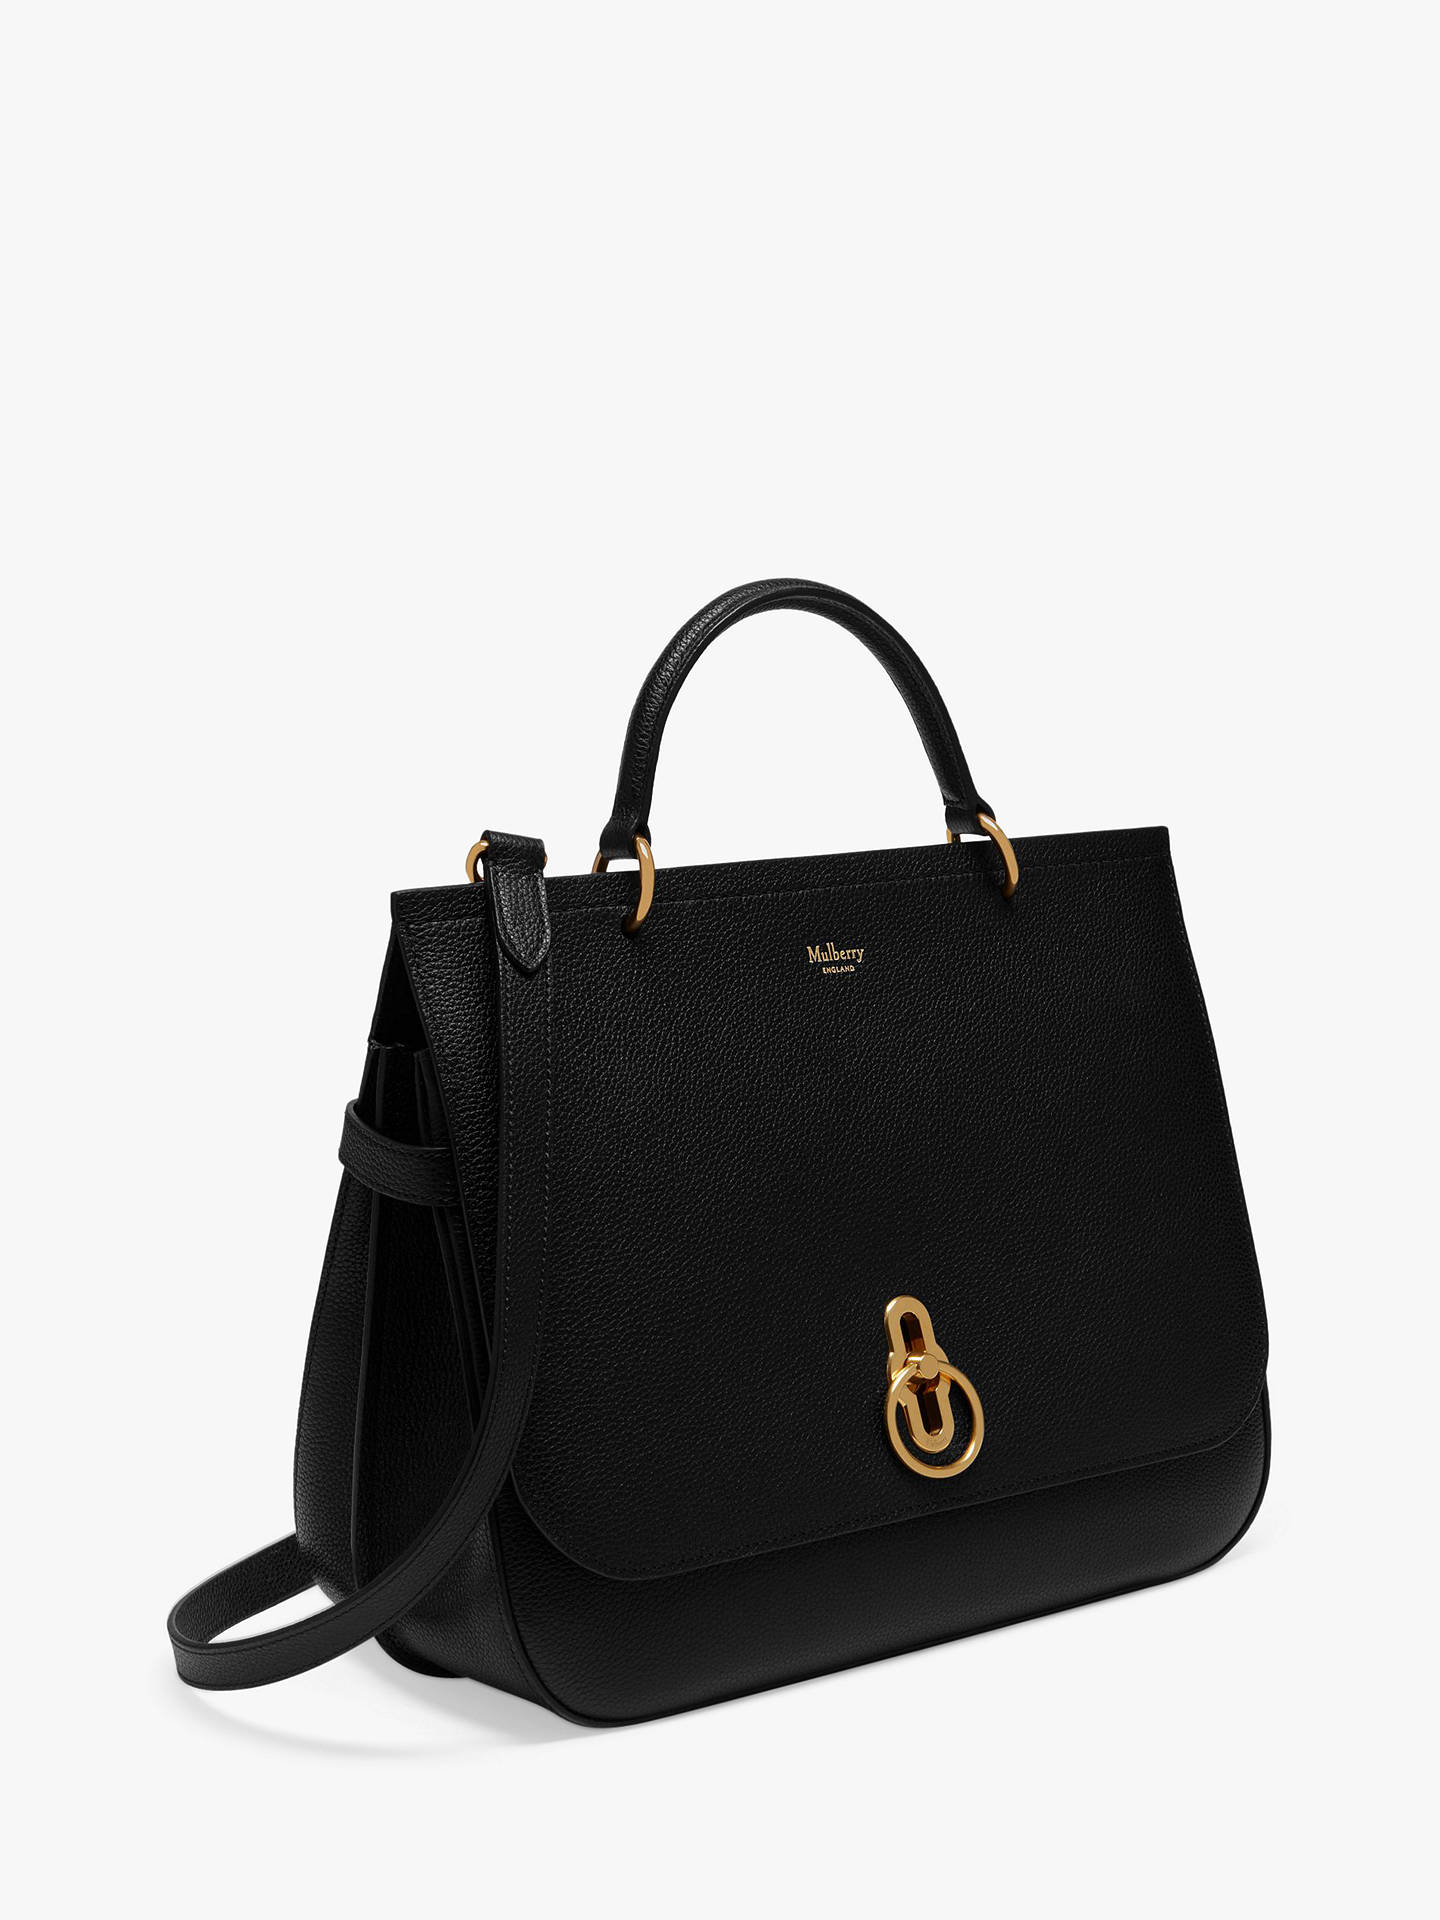 214caa158b5 ... BuyMulberry Amberley Small Classic Grain Leather Satchel Bag, Black  Online at johnlewis.com ...